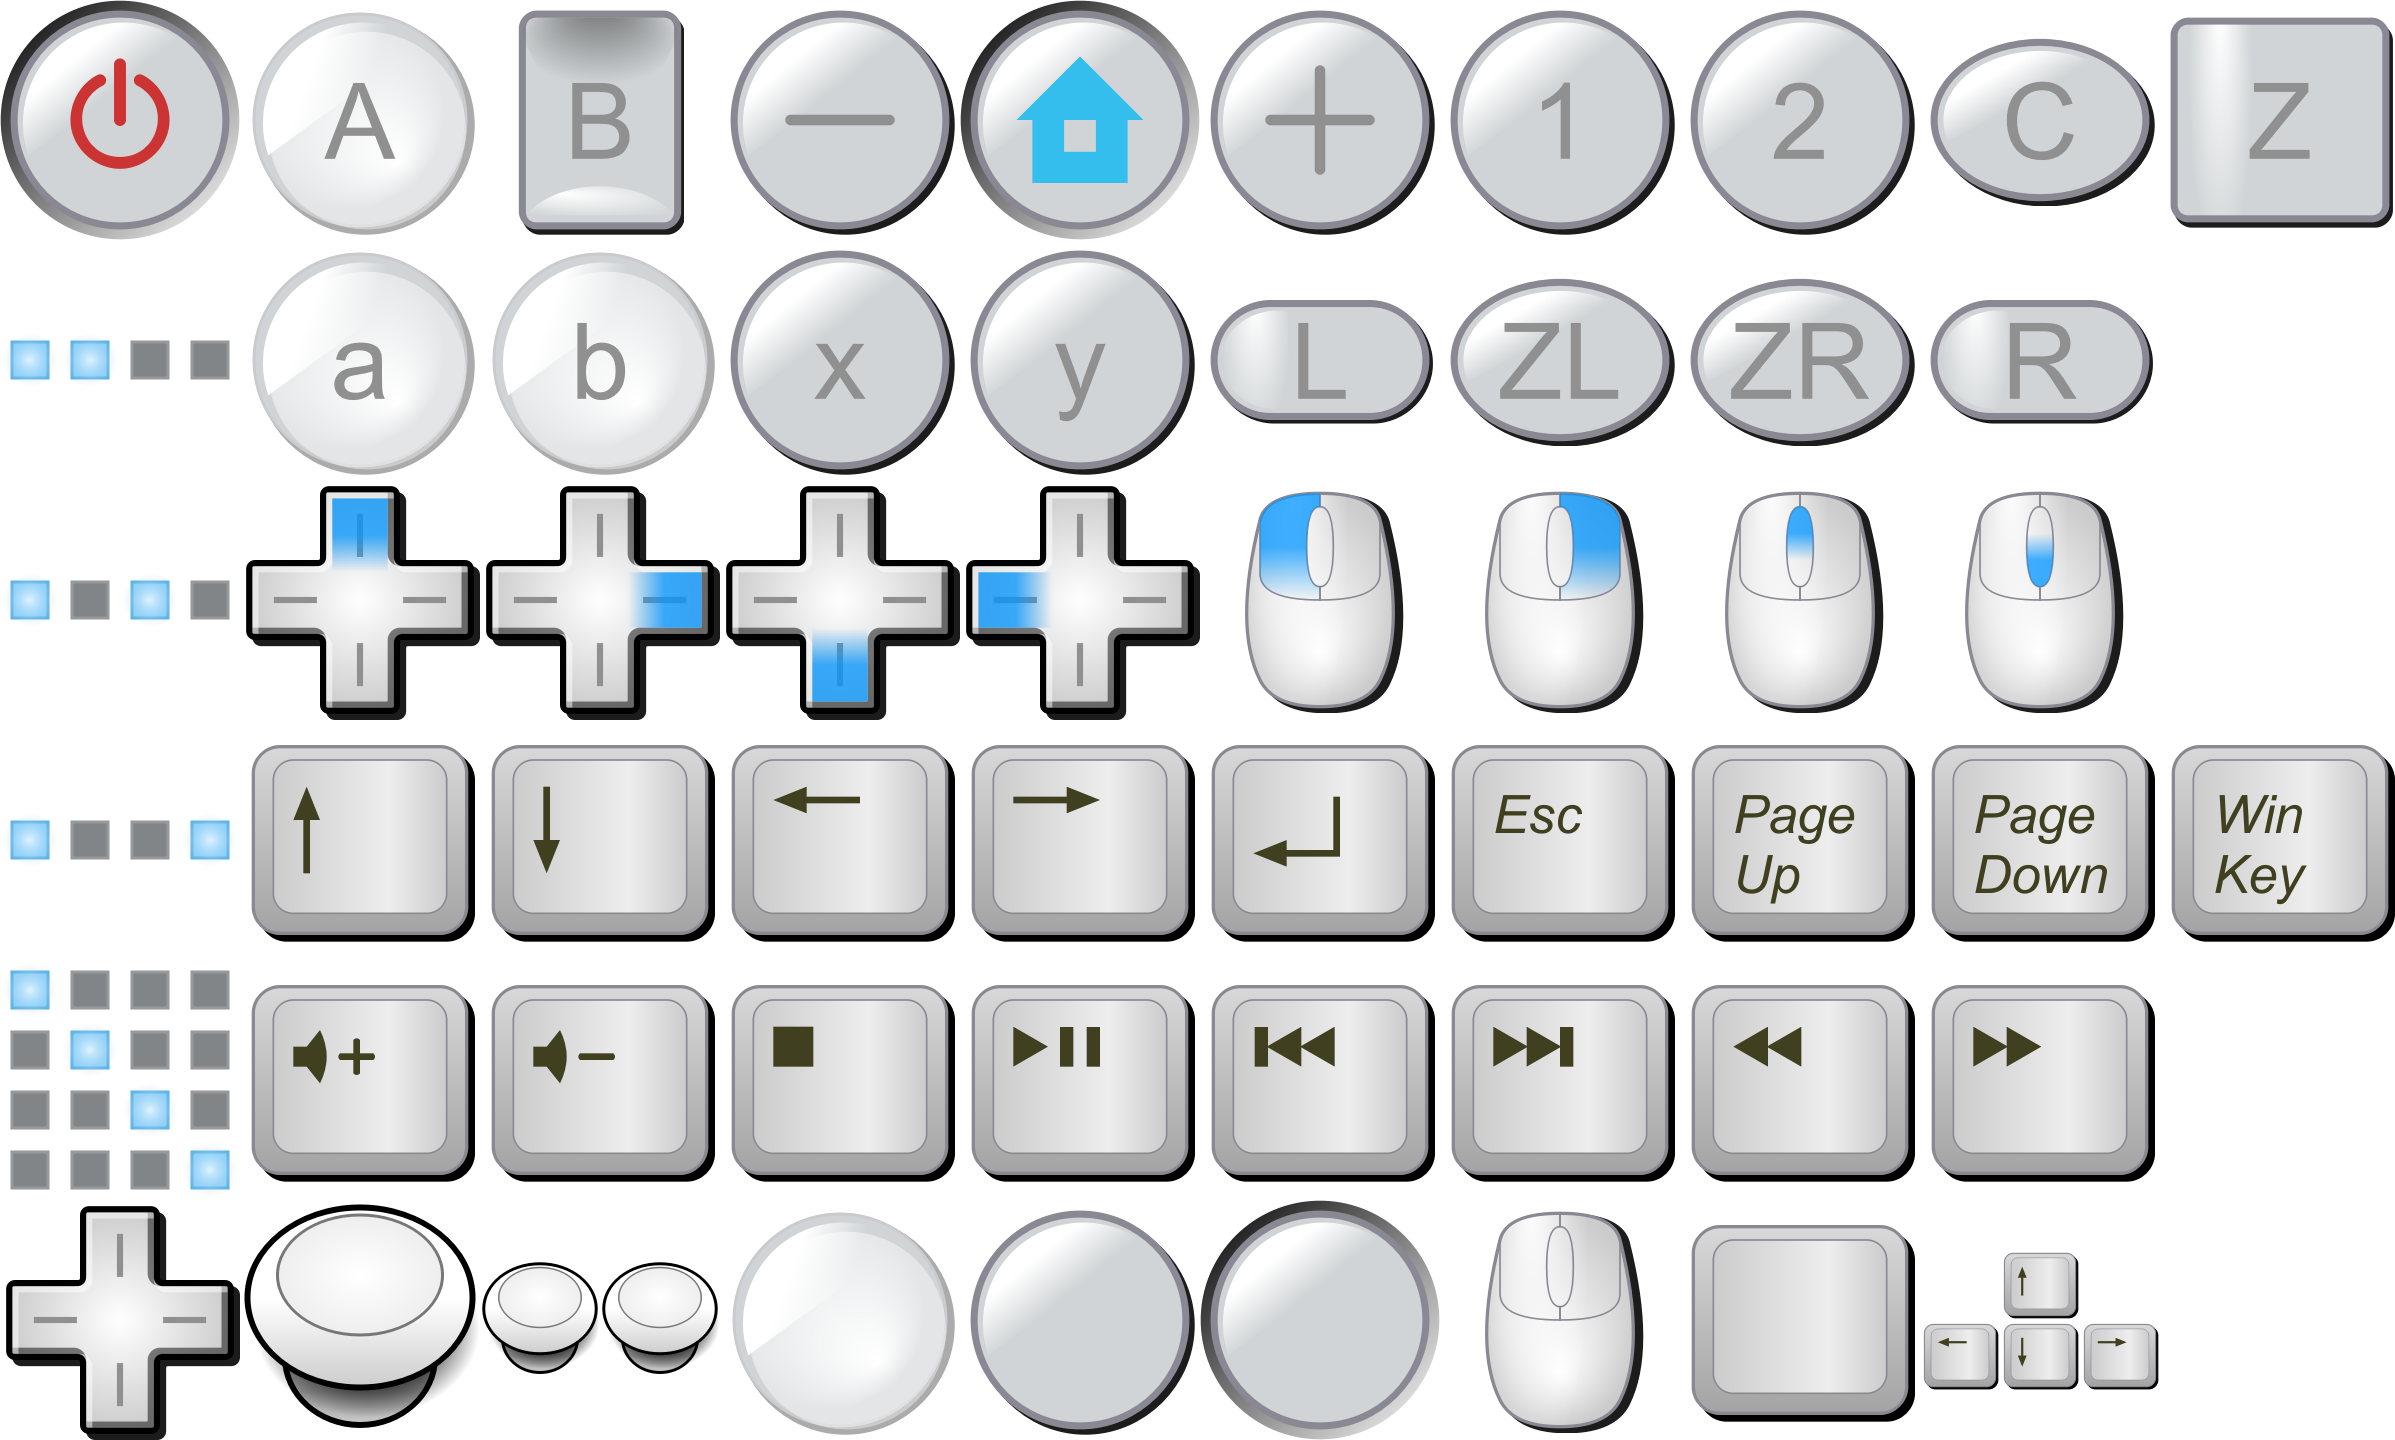 banner freeuse Wii buttons mouse big. Keyboard keys clipart